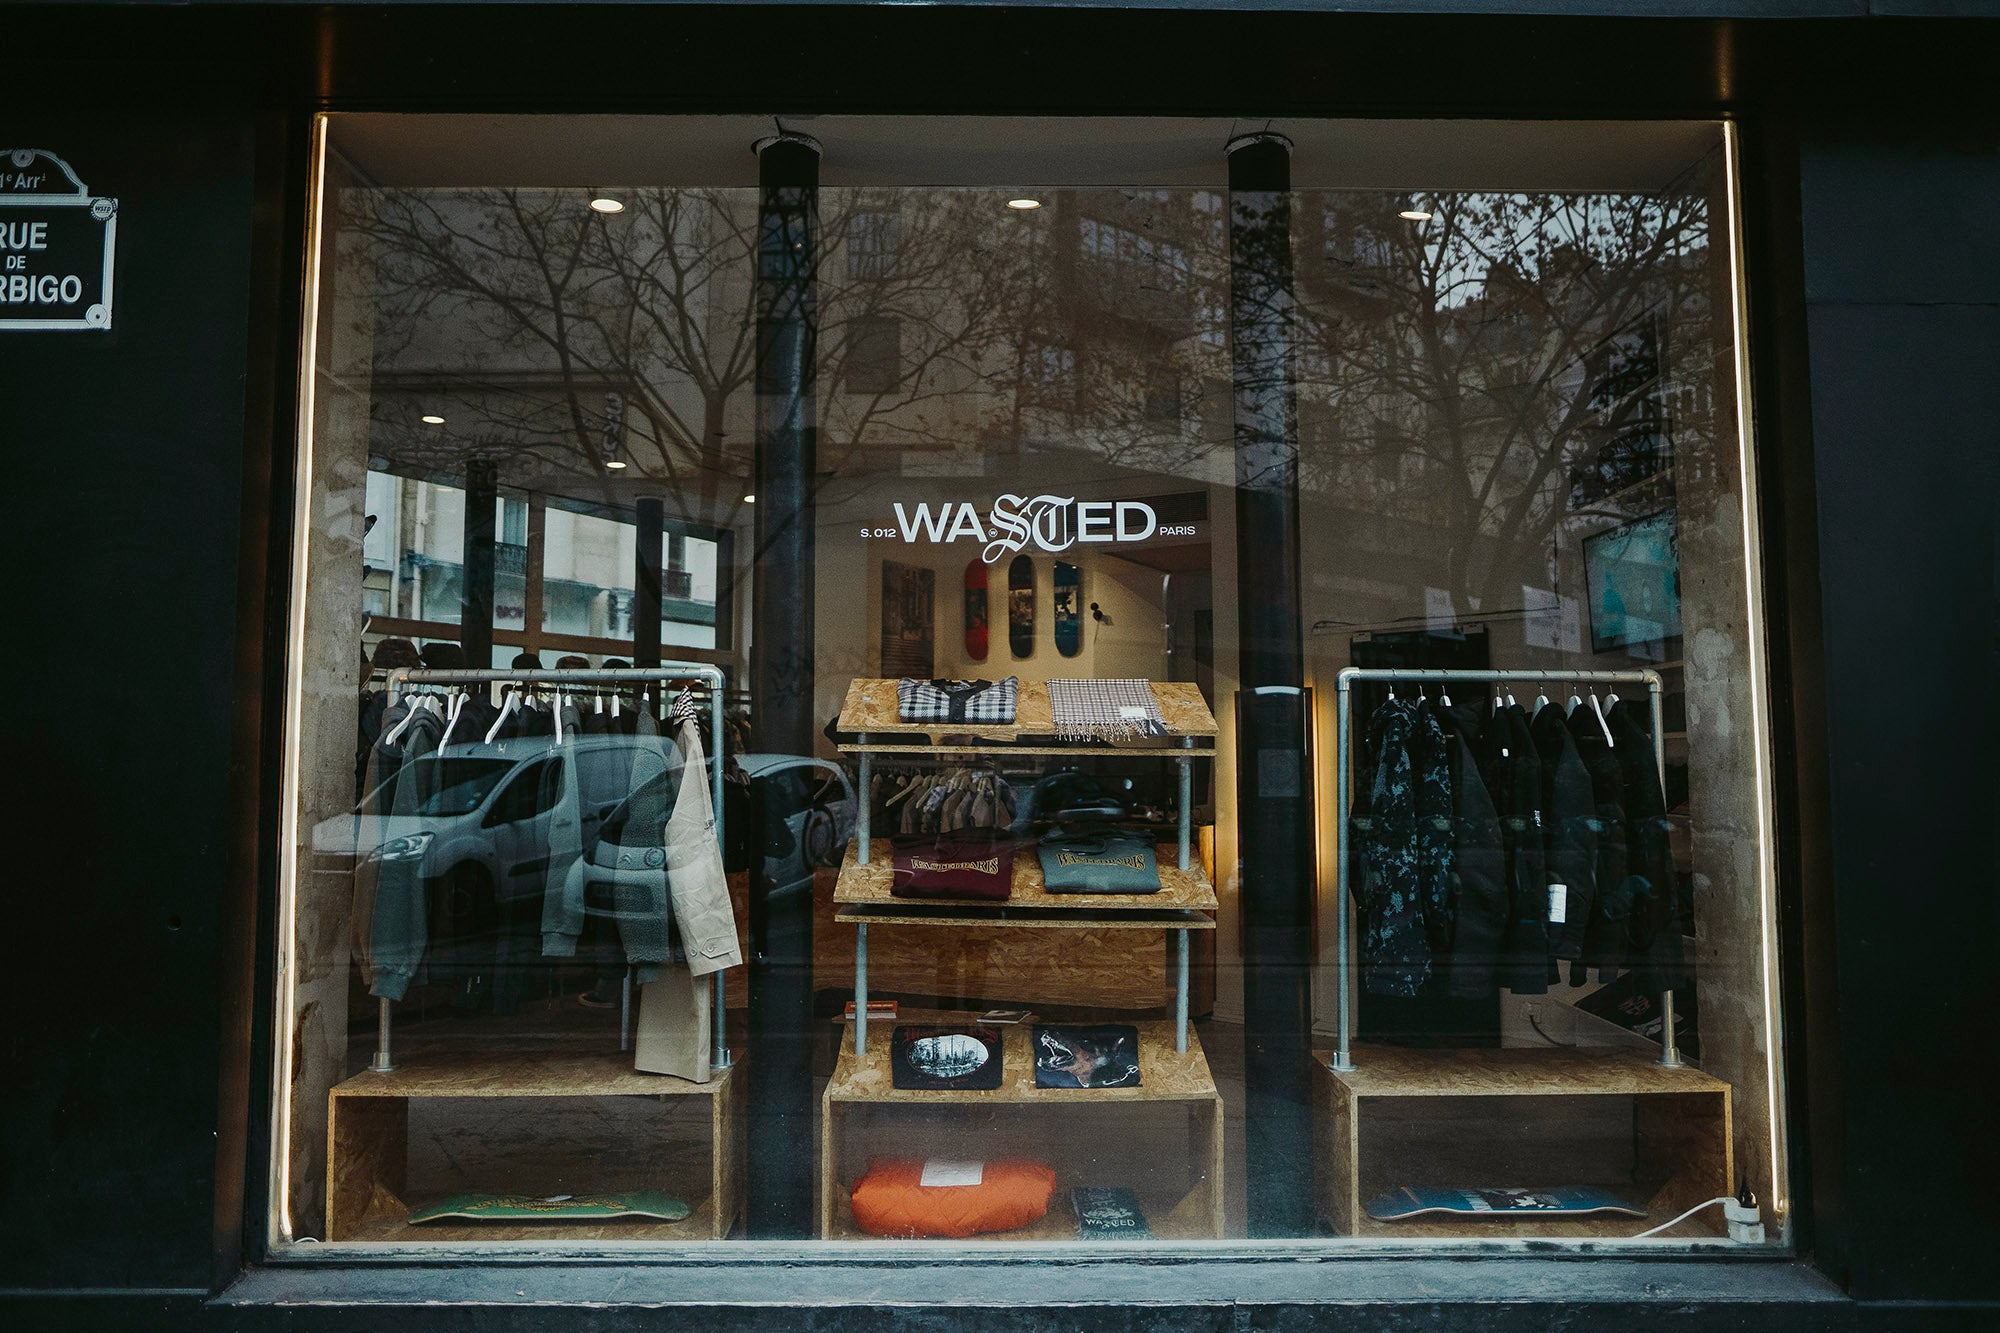 wasted paris boutique store